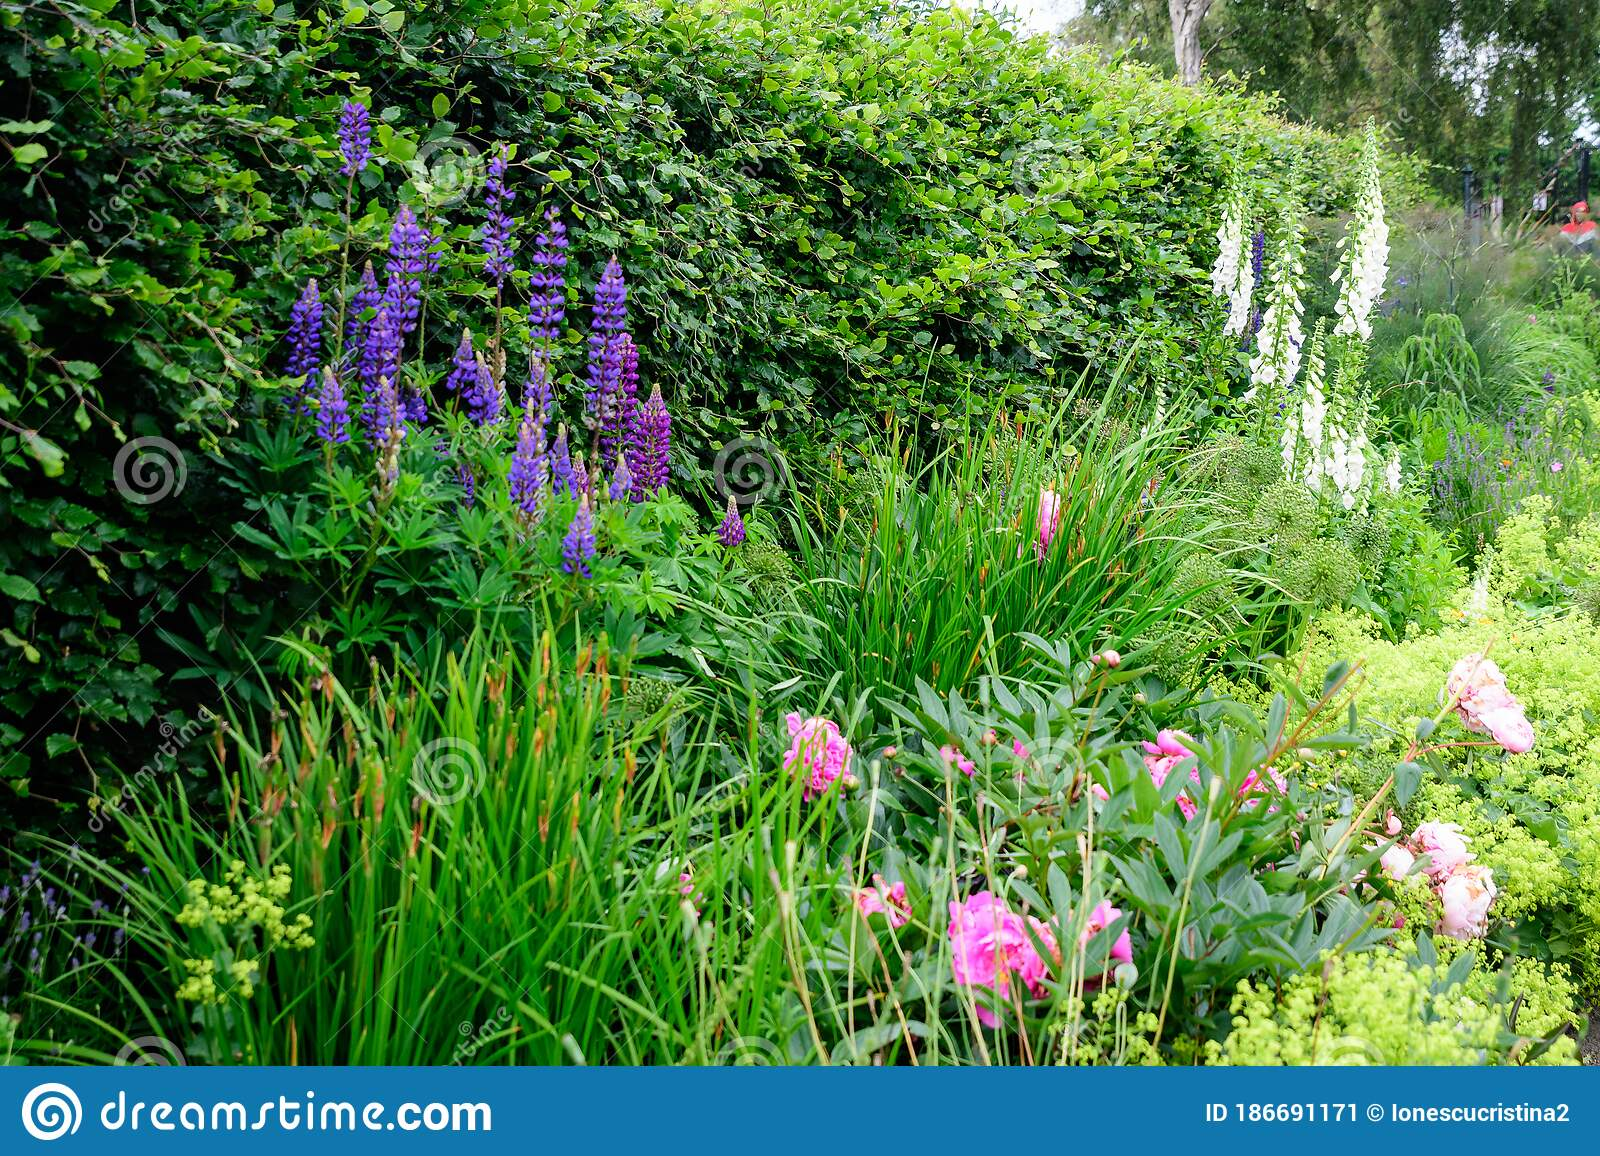 Minimalist Garden Landscape With Plants And Grass And Blue Flowers And Grey Alley In A Sunny Day In Scotland United Kingdom Typi Stock Image Image Of Meadow Path 186691171